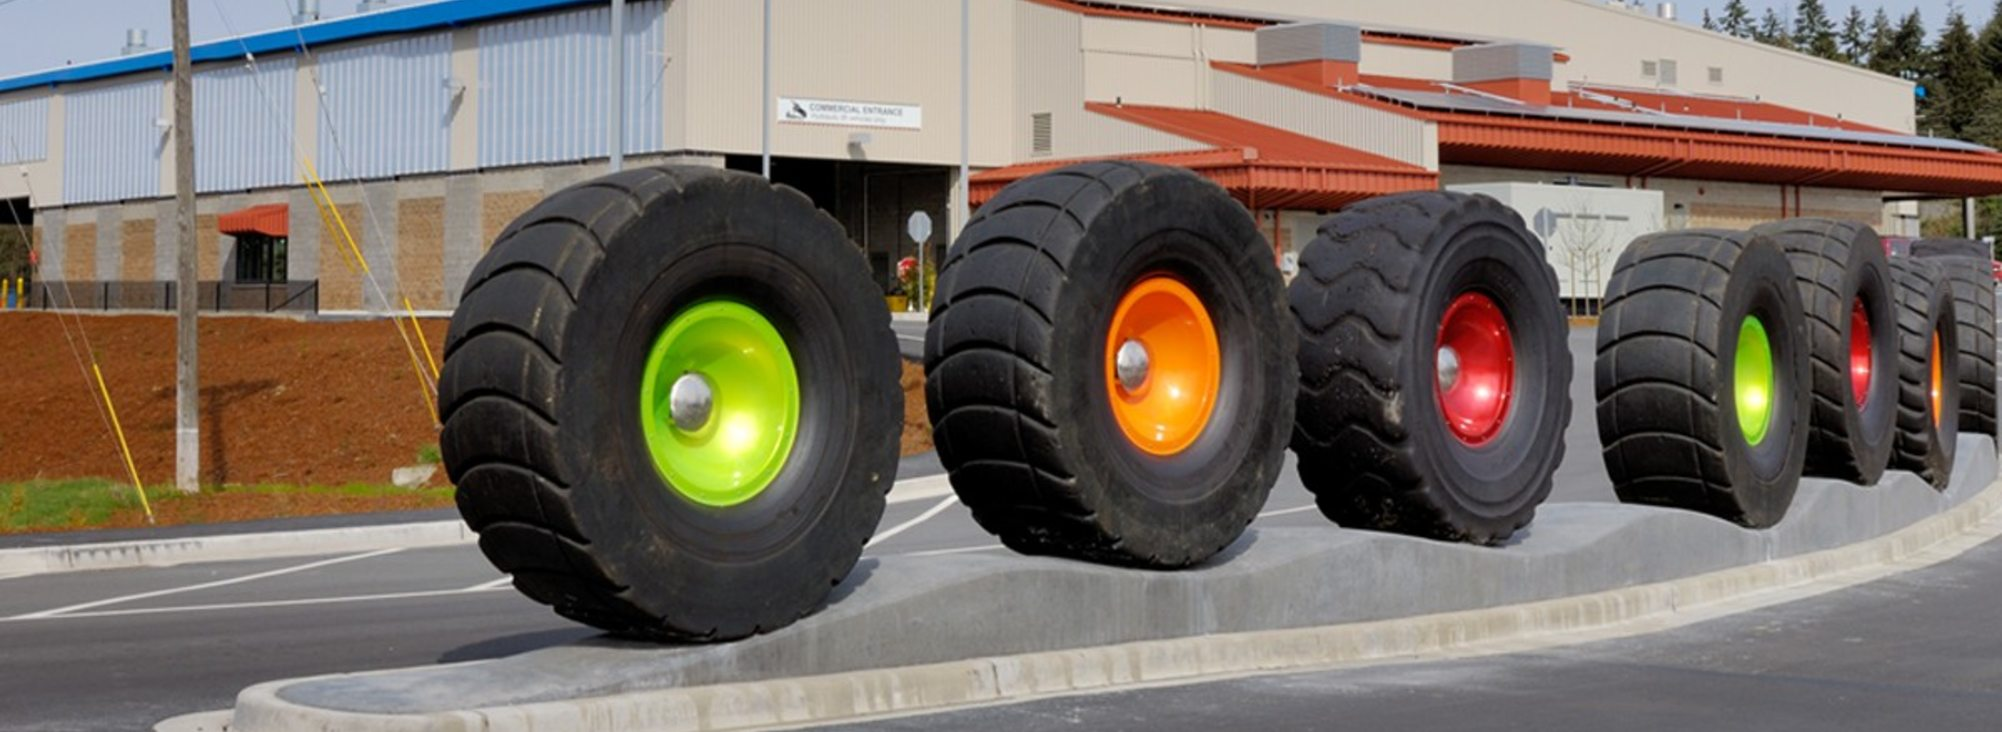 public art installation at a transfer station featuring tires